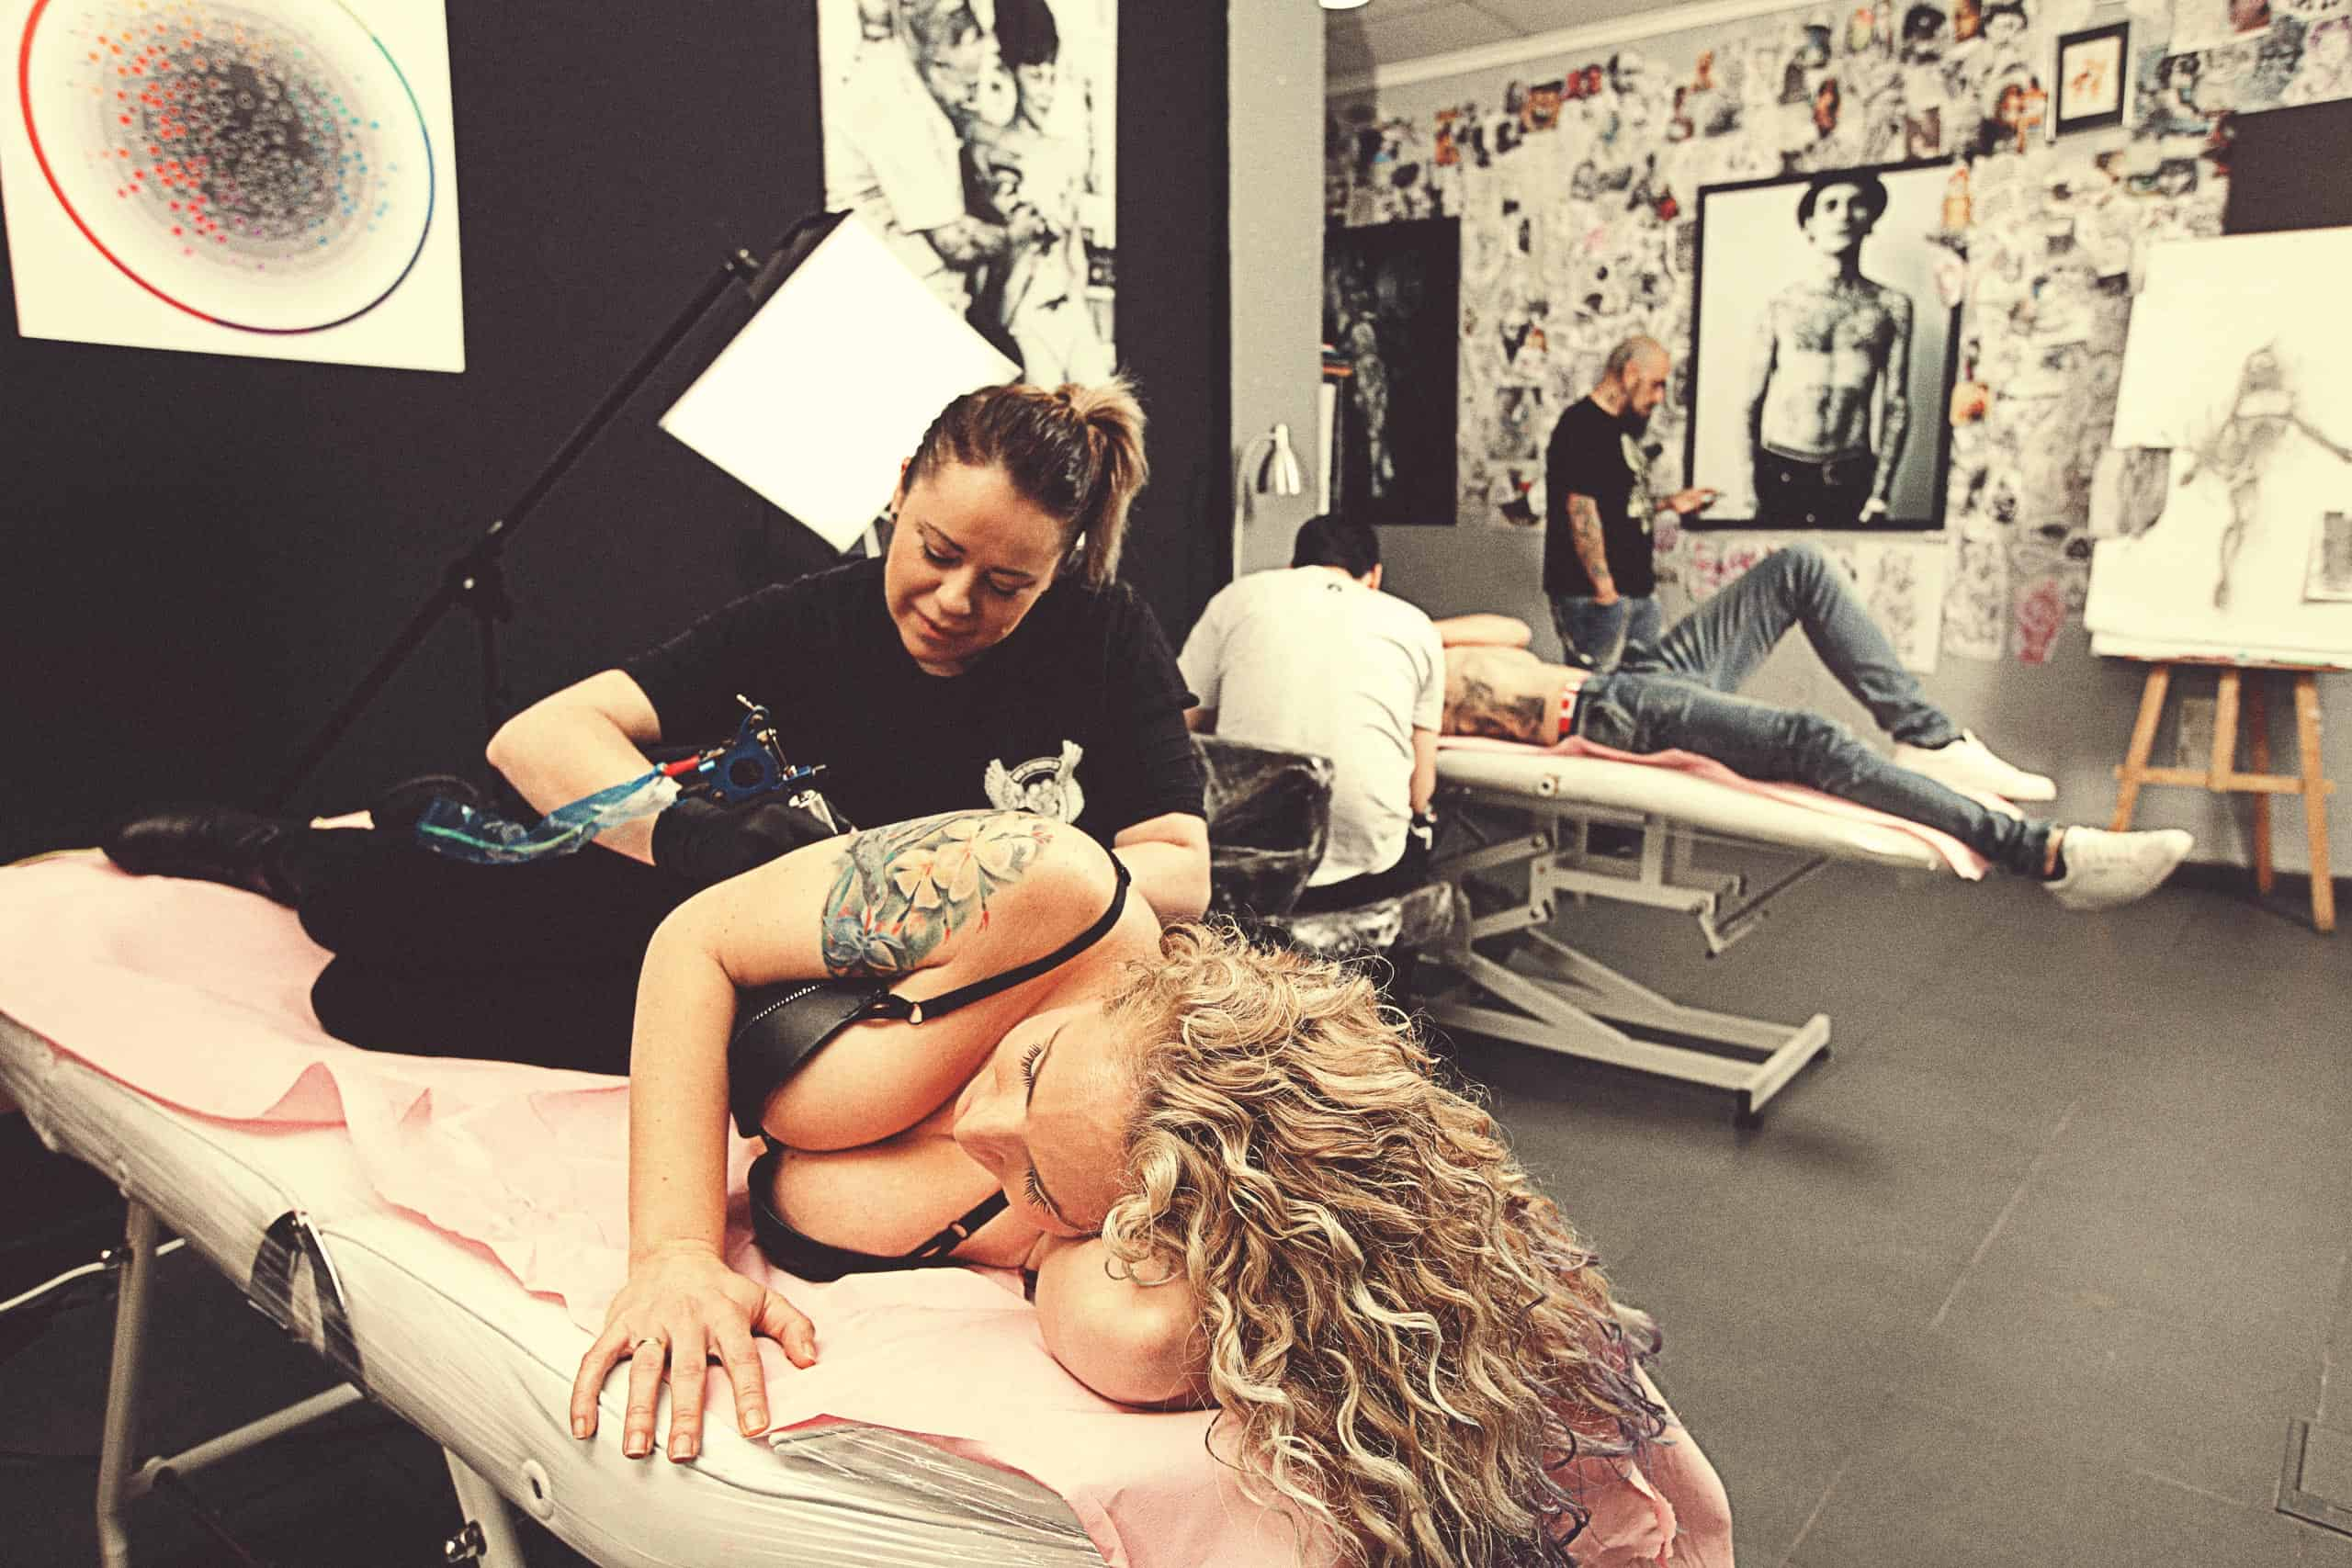 Personal the inker interior estudio tatuando